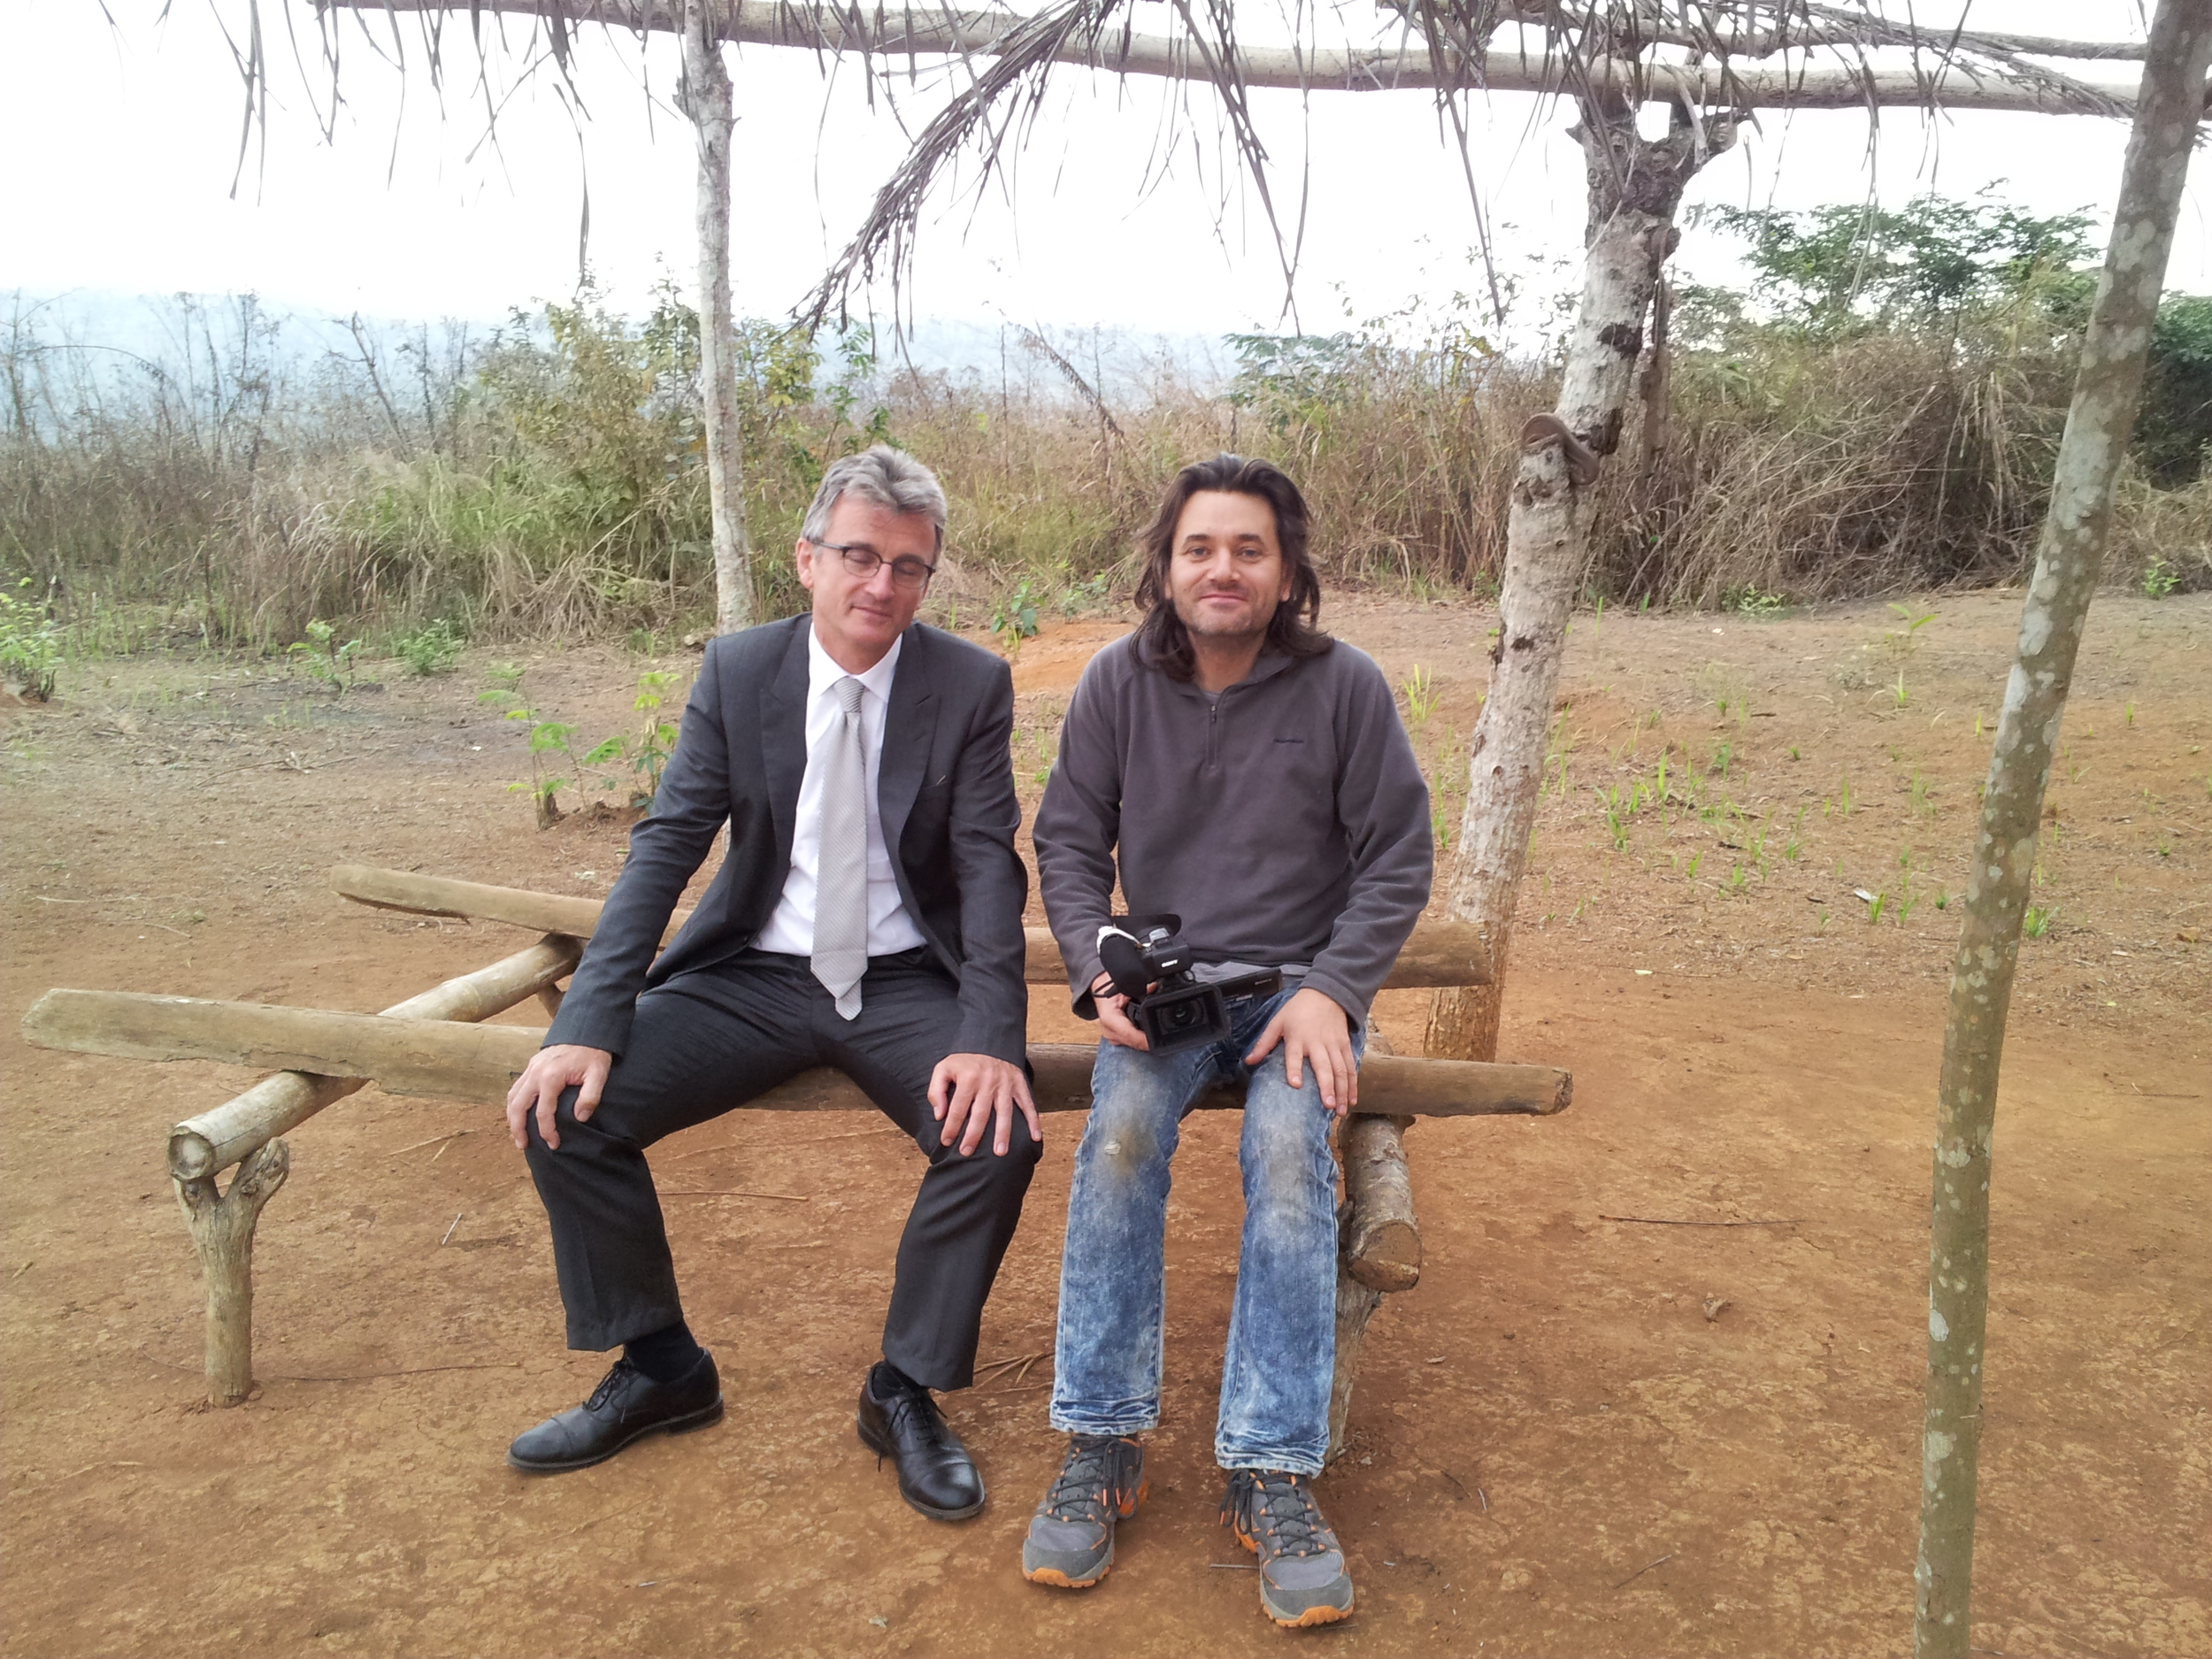 On location in the Congo